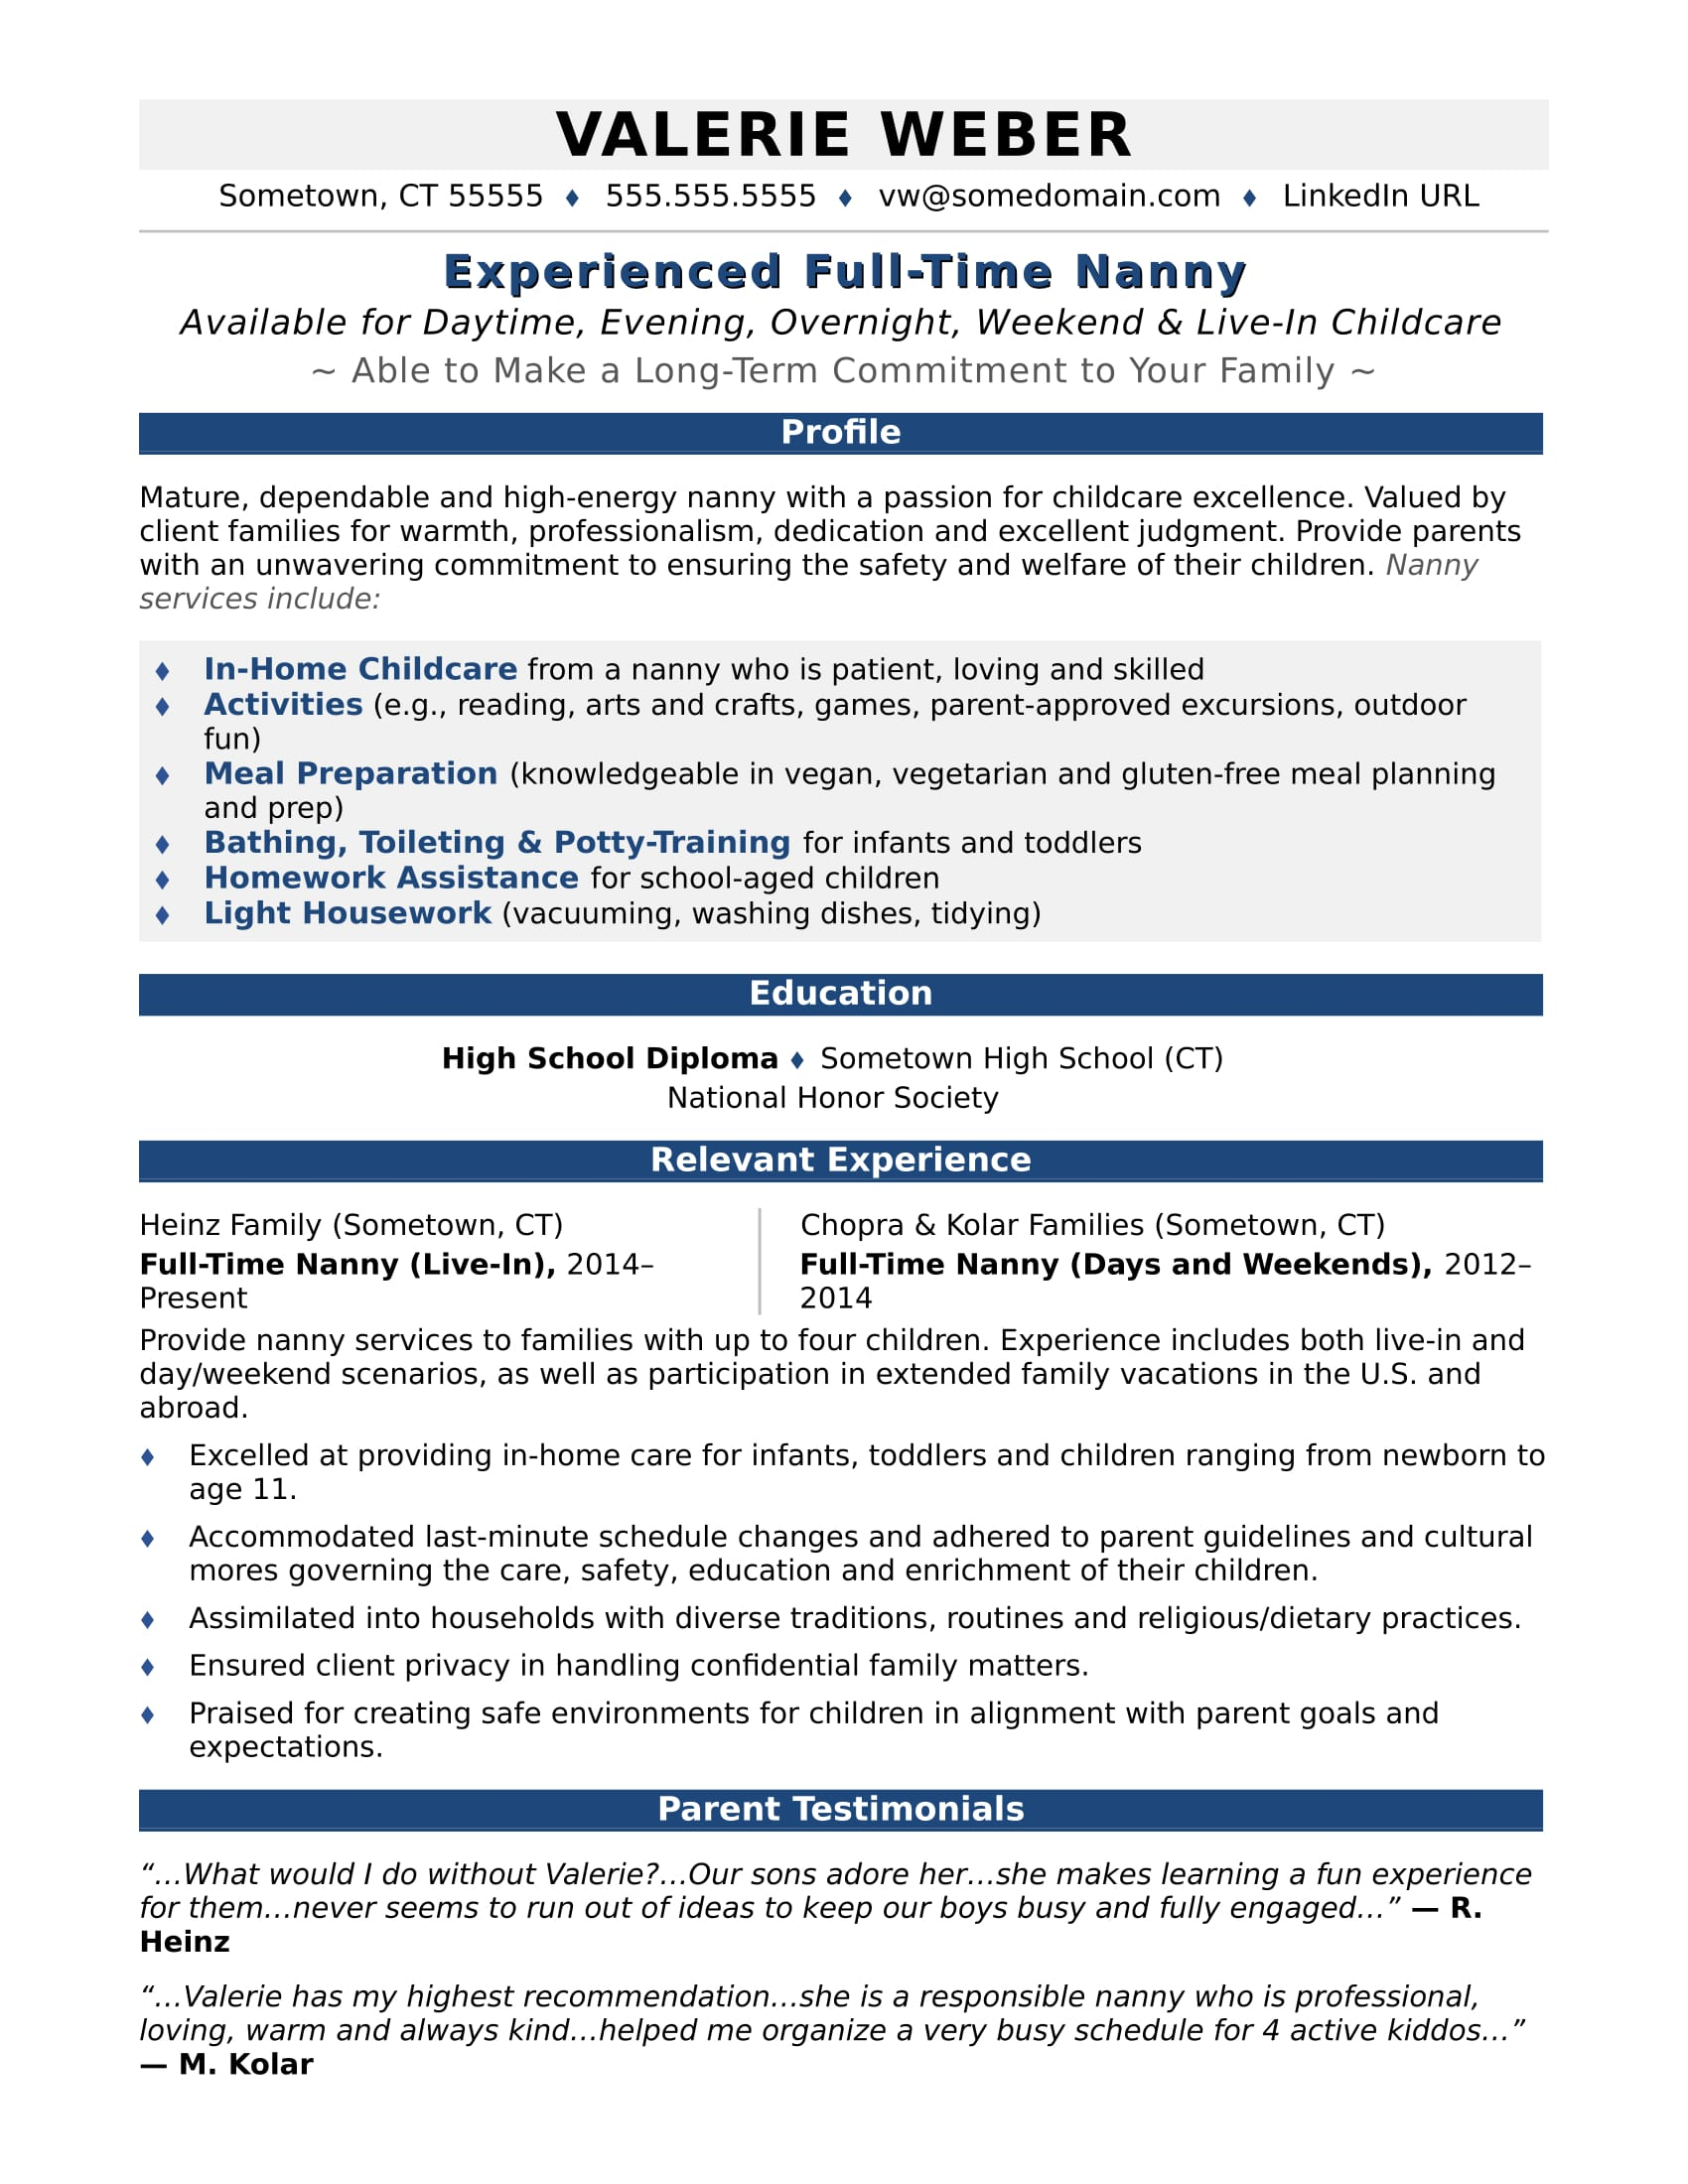 nanny resume sample monster child care catchy headlines relevant courses on definition Resume Child Care Resume Sample